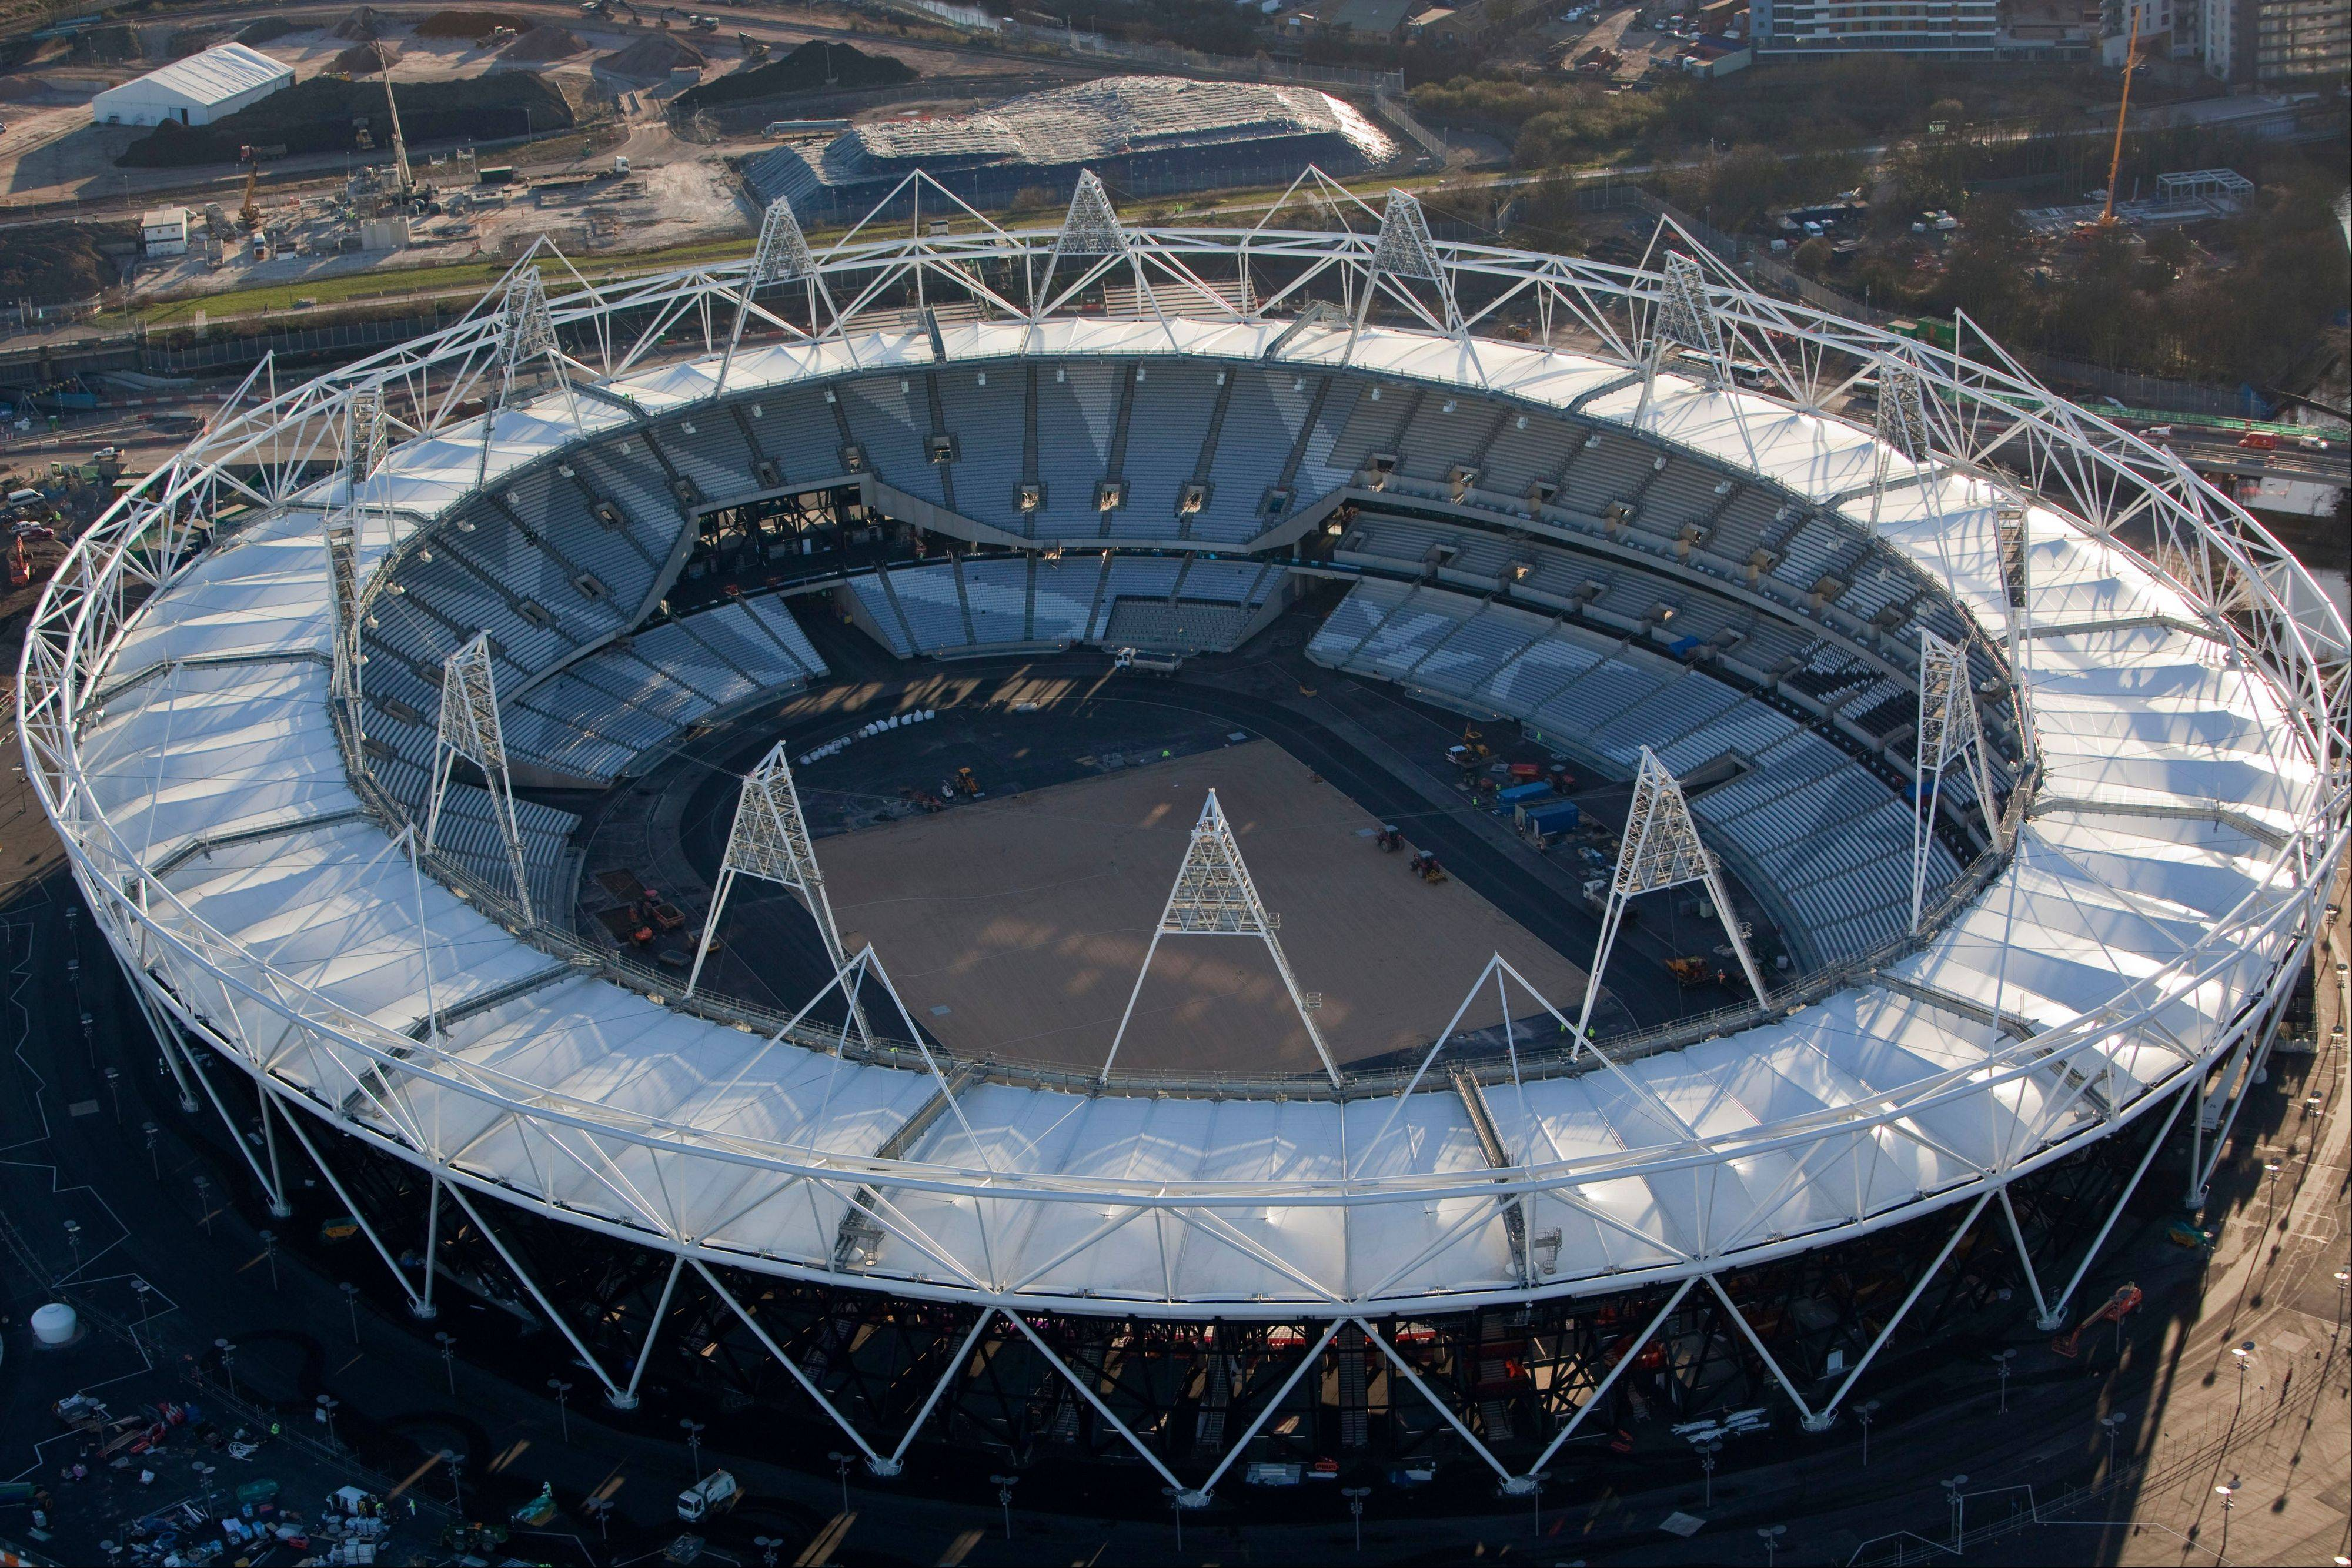 An aerial view of the new Olympic Stadium in London, England.